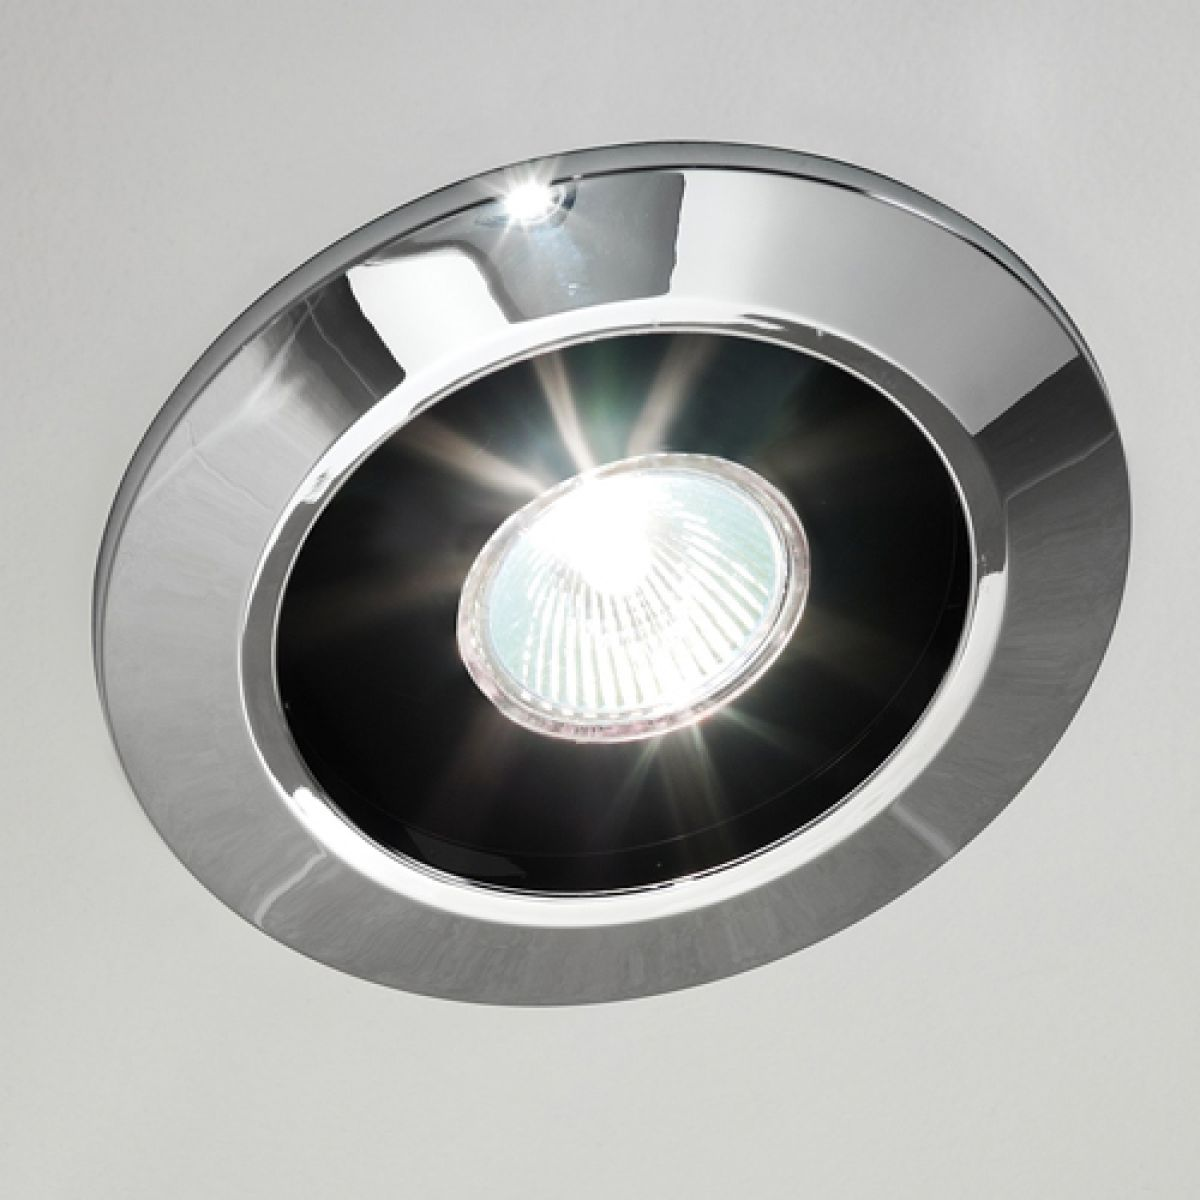 Bathroom Lighting With Extractor Fan With Simple Example In Australia